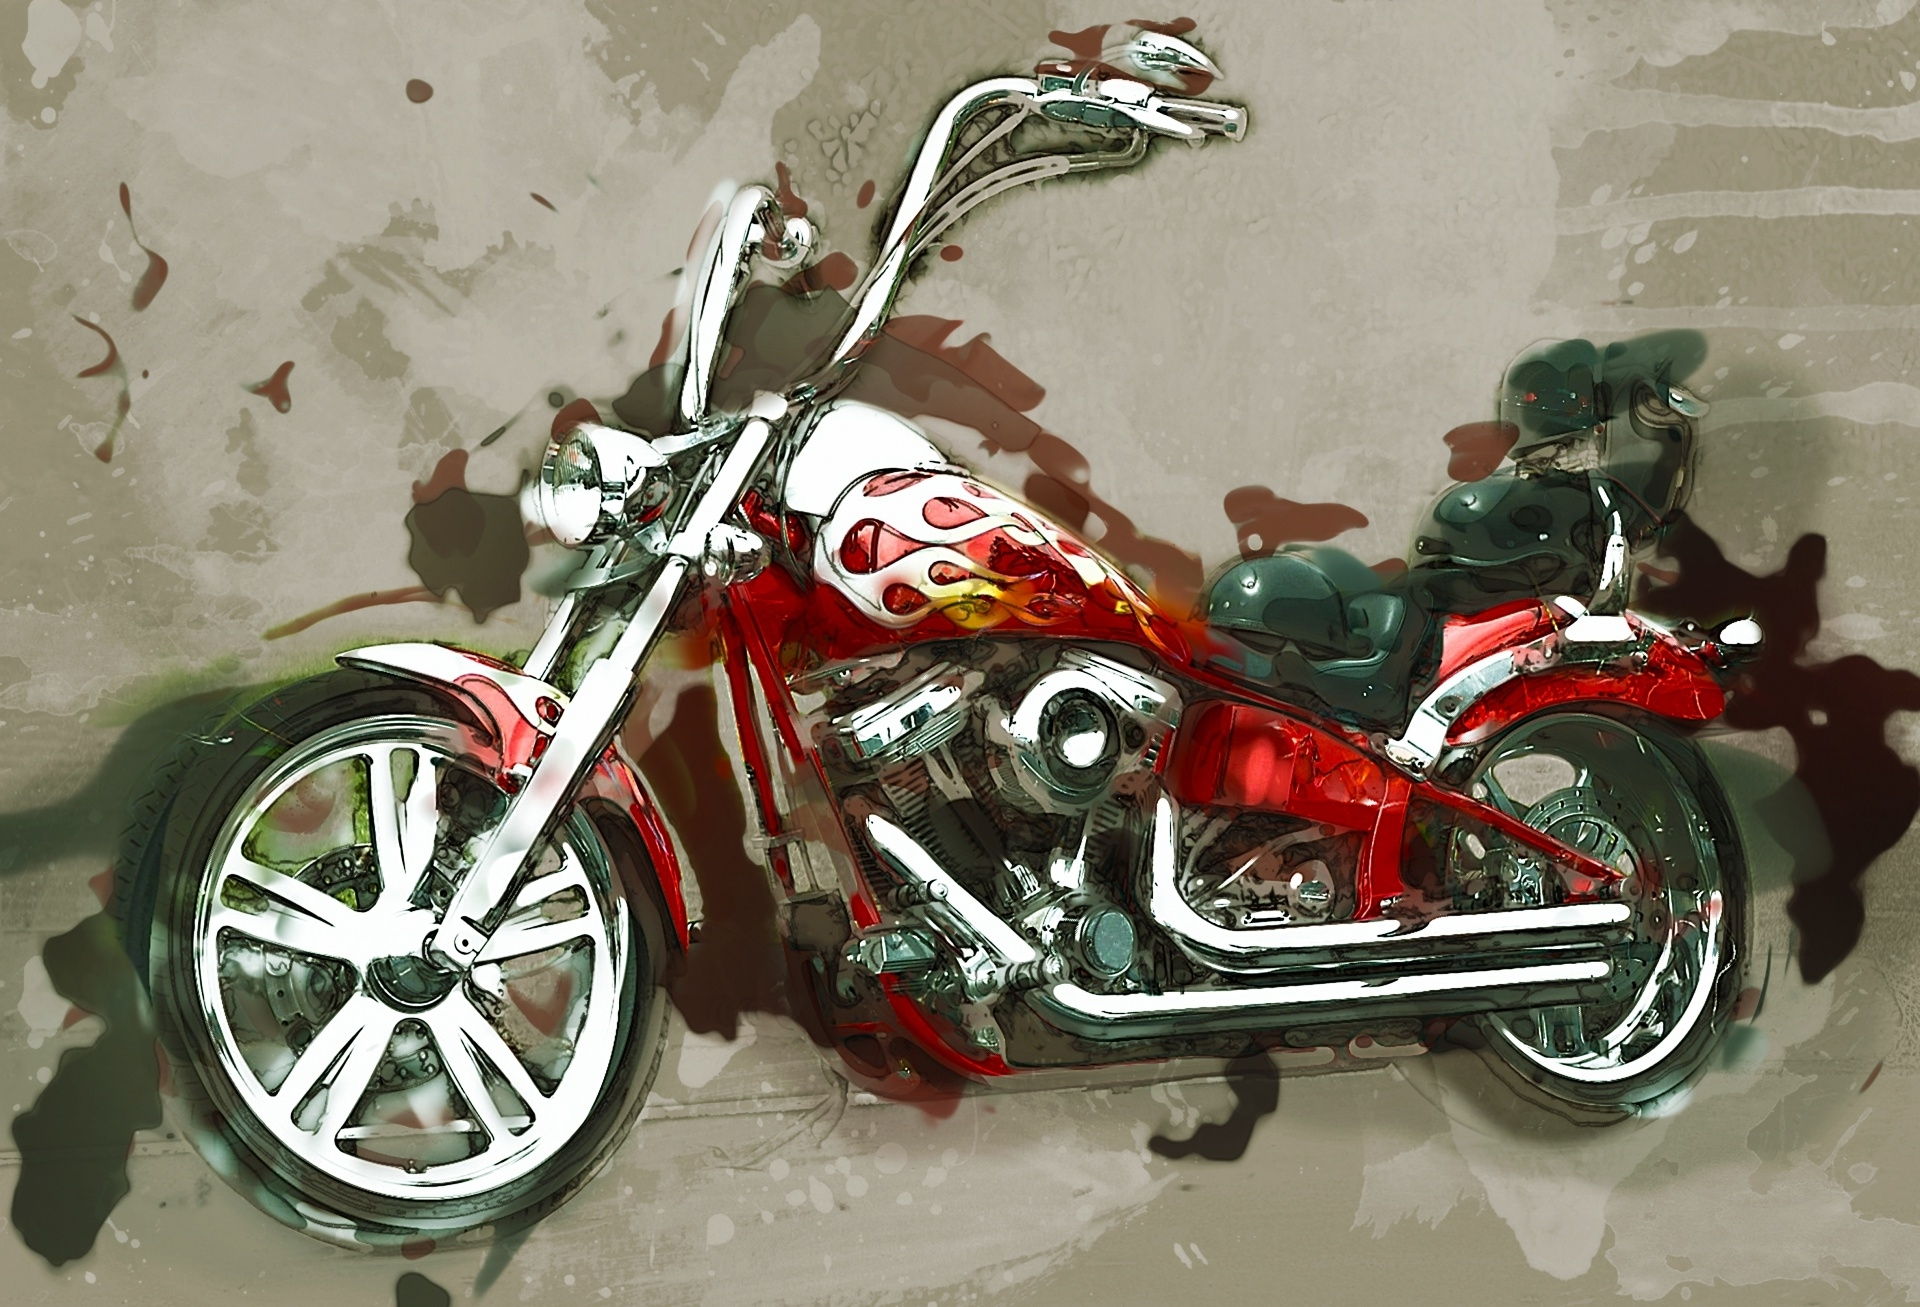 Motorcycle Wall Art Free Stock Photo – Public Domain Pictures Throughout Favorite Motorcycle Wall Art (View 10 of 20)